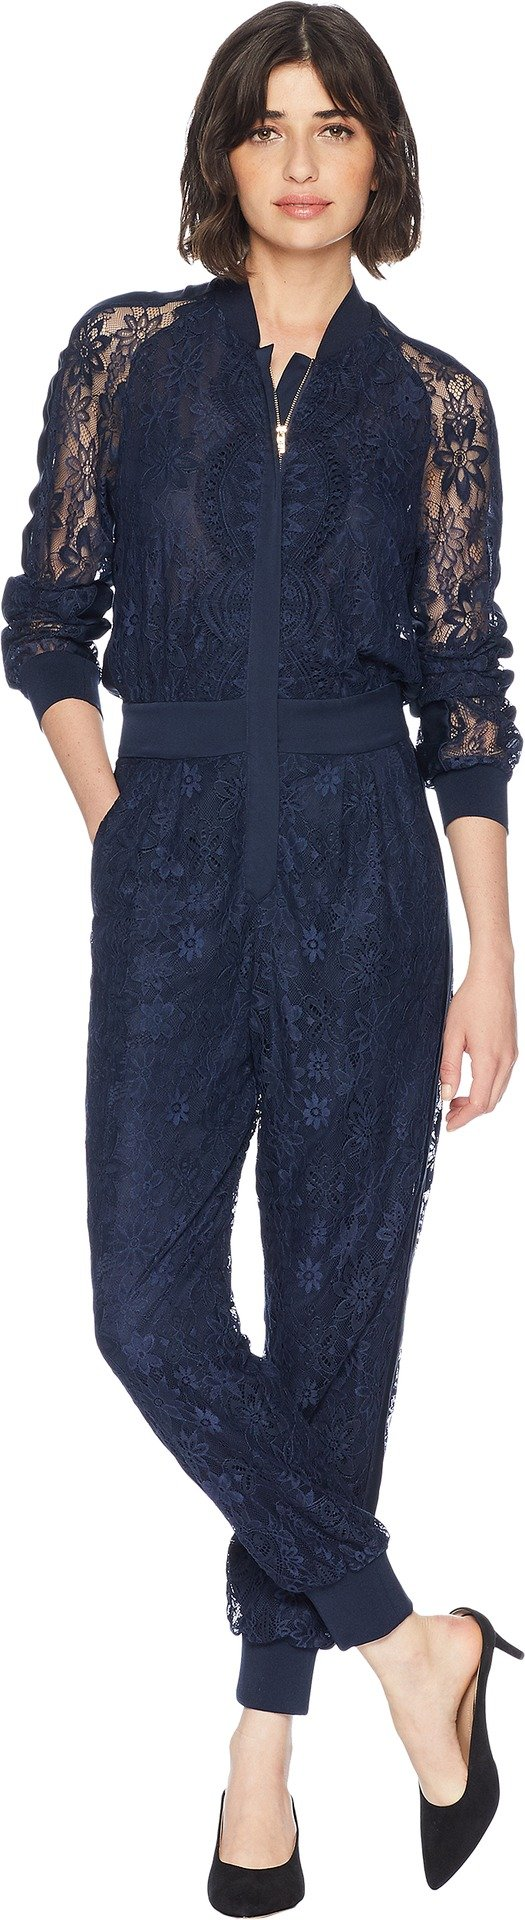 Juicy Couture Women's Kendall Lace Jumpsuit Regal Small by Juicy Couture (Image #1)